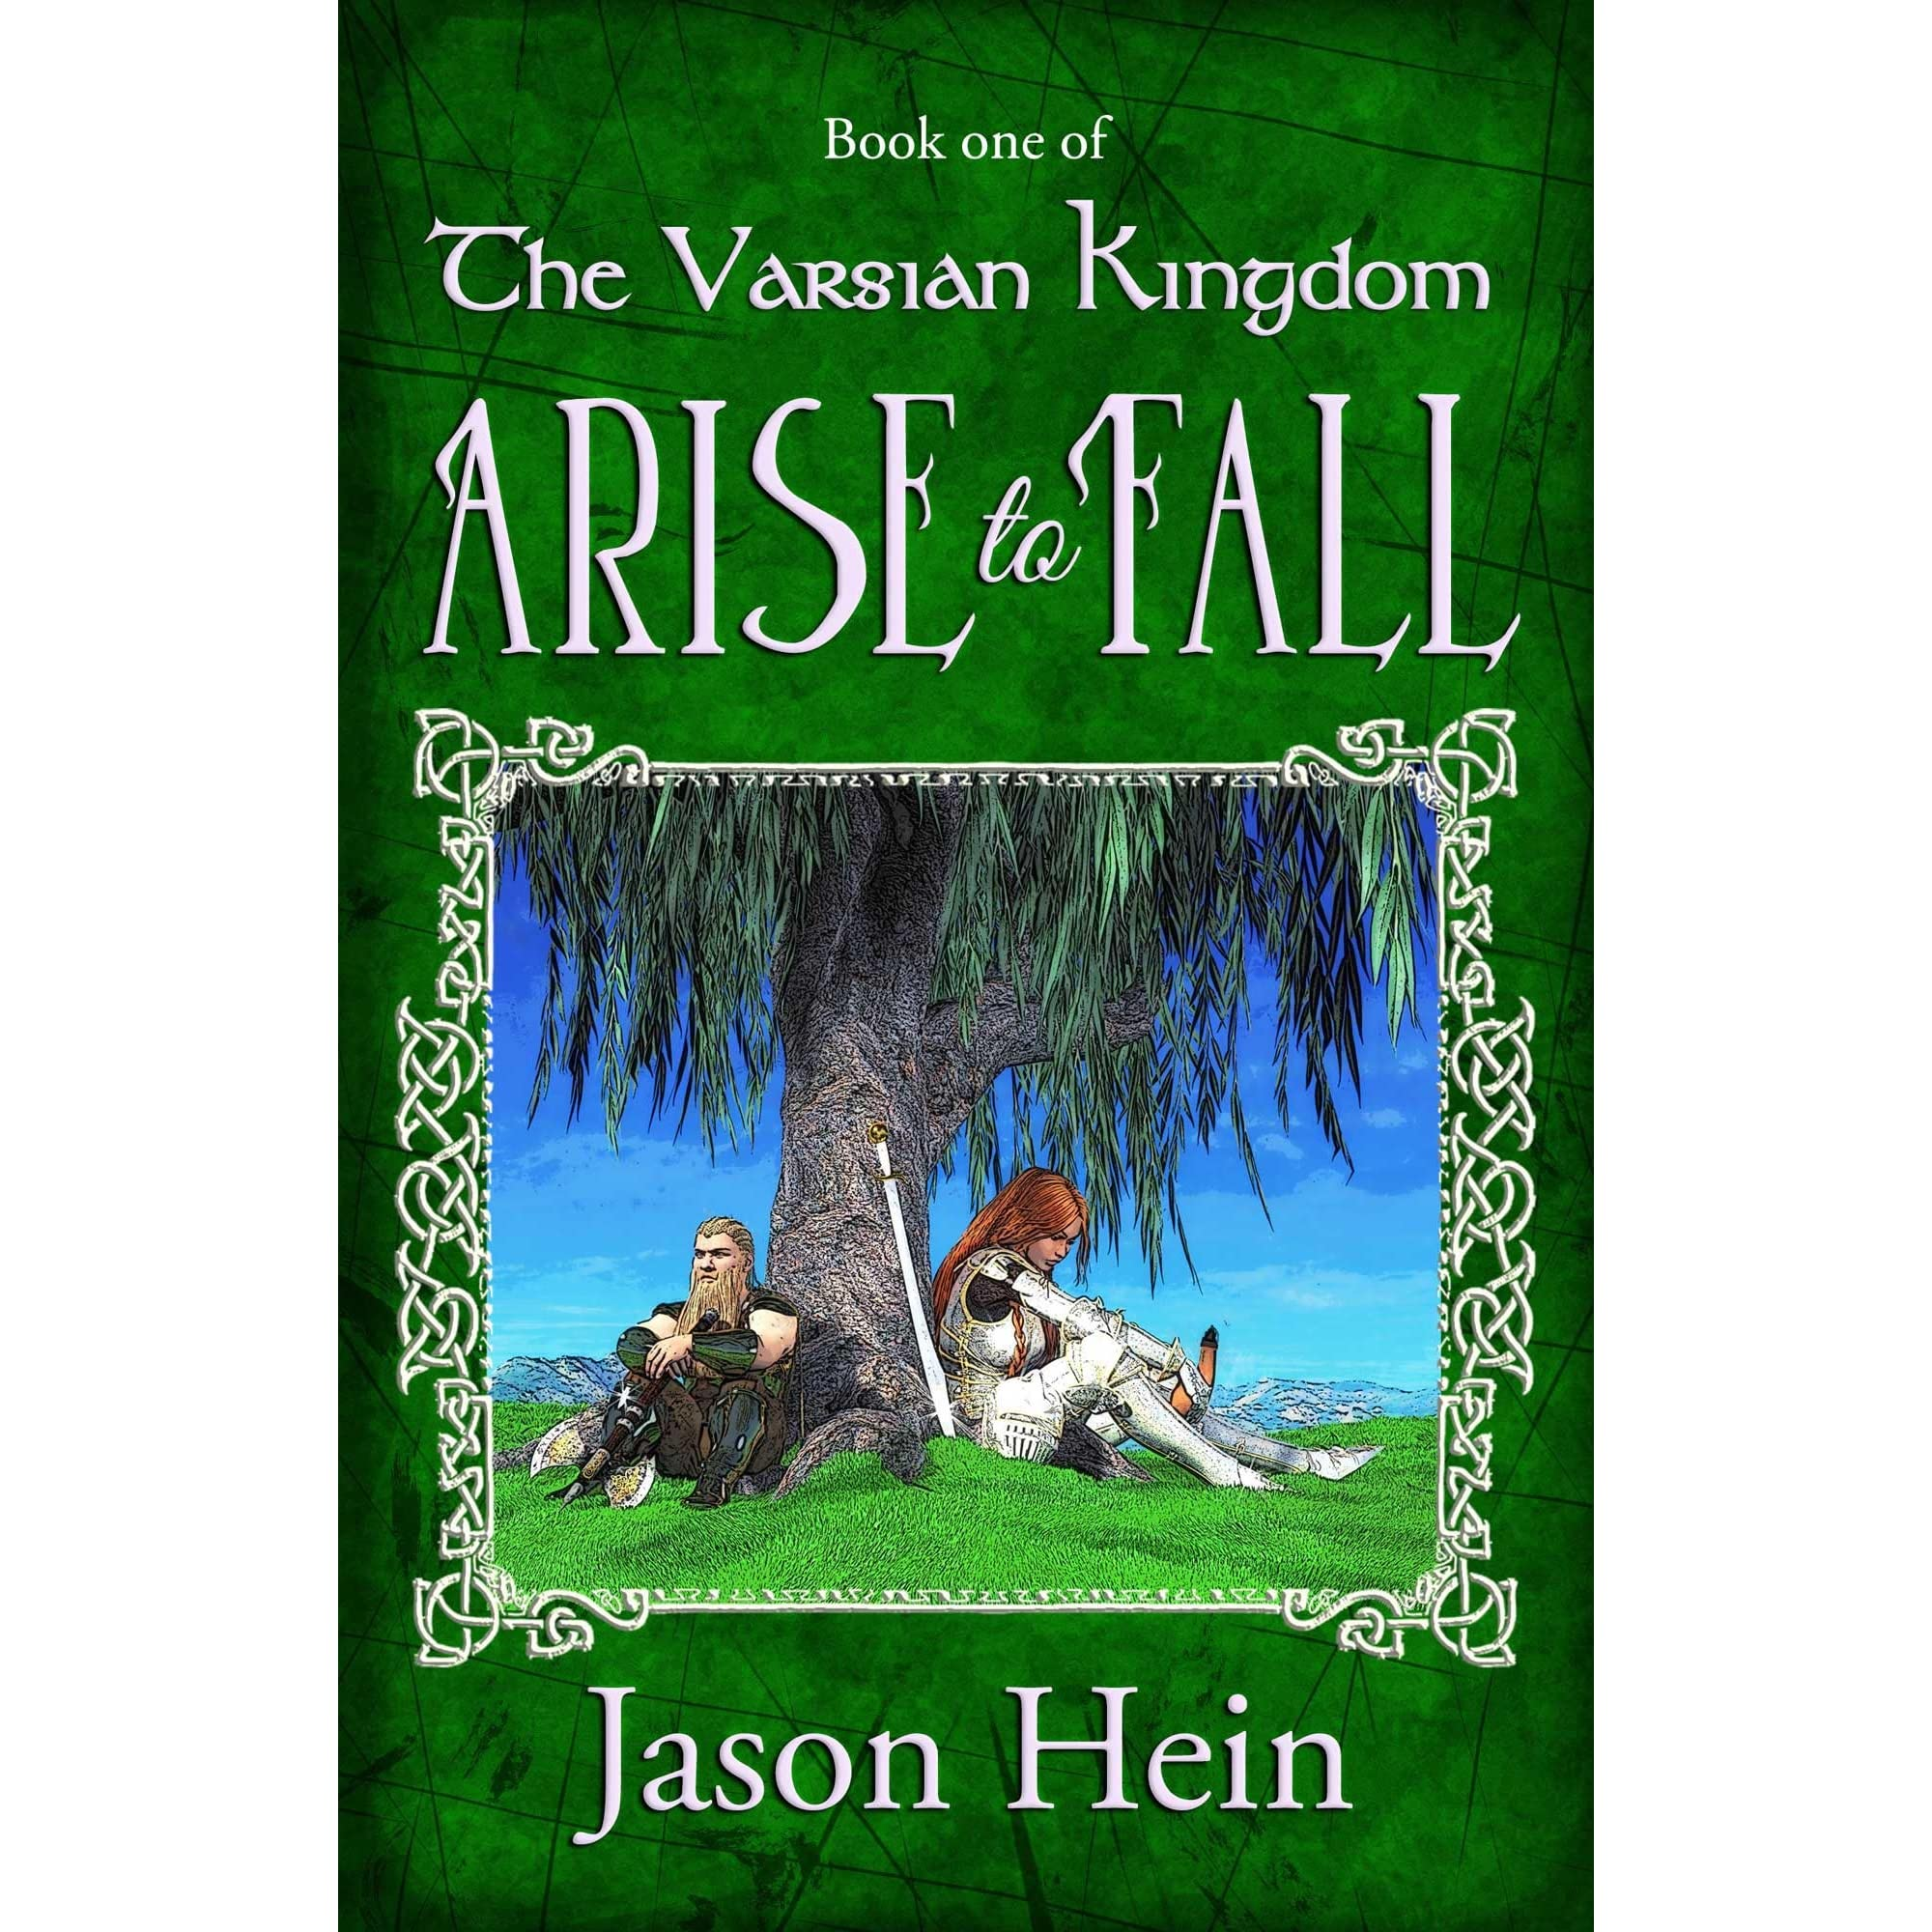 Kingdom Manga Goodreads: Arise To Fall (The Varsian Kingdom #1) By Jason Hein